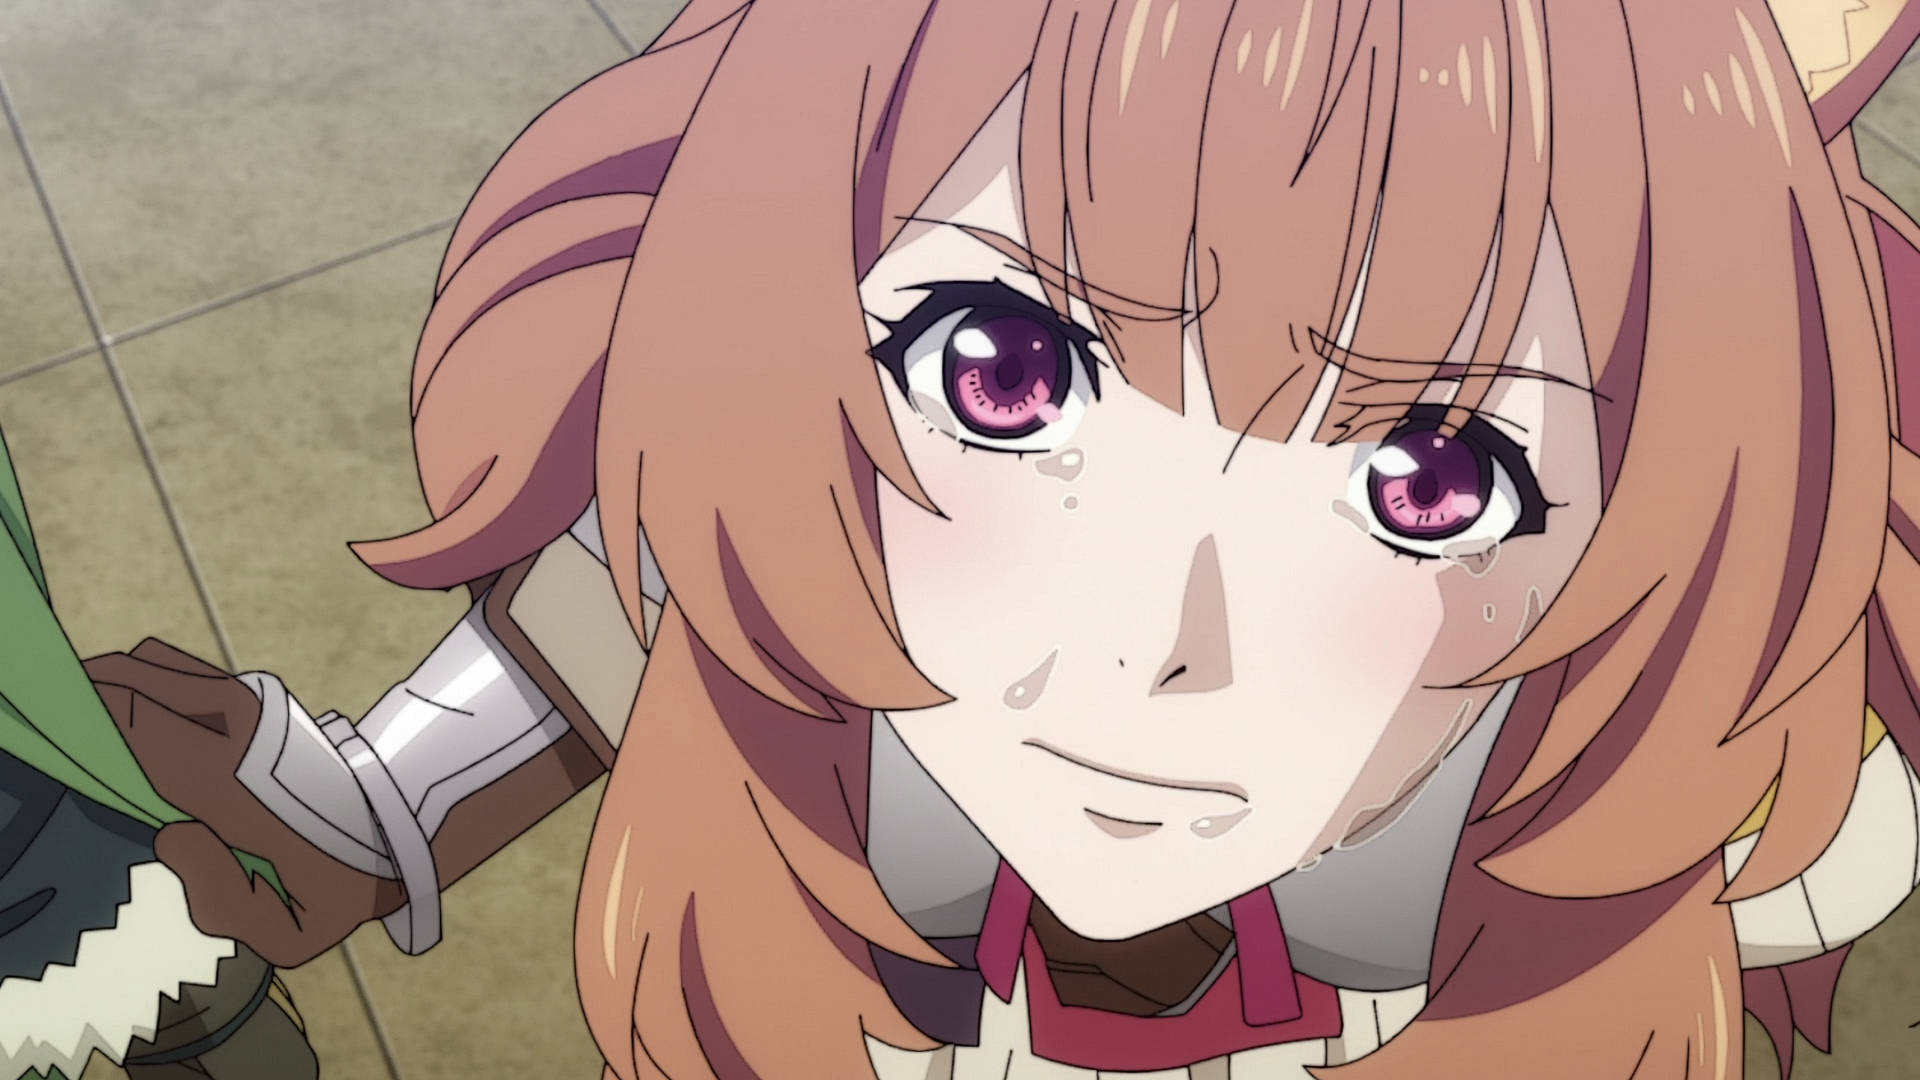 Raphtalia - The Rising of the Shield Hero Season Finale